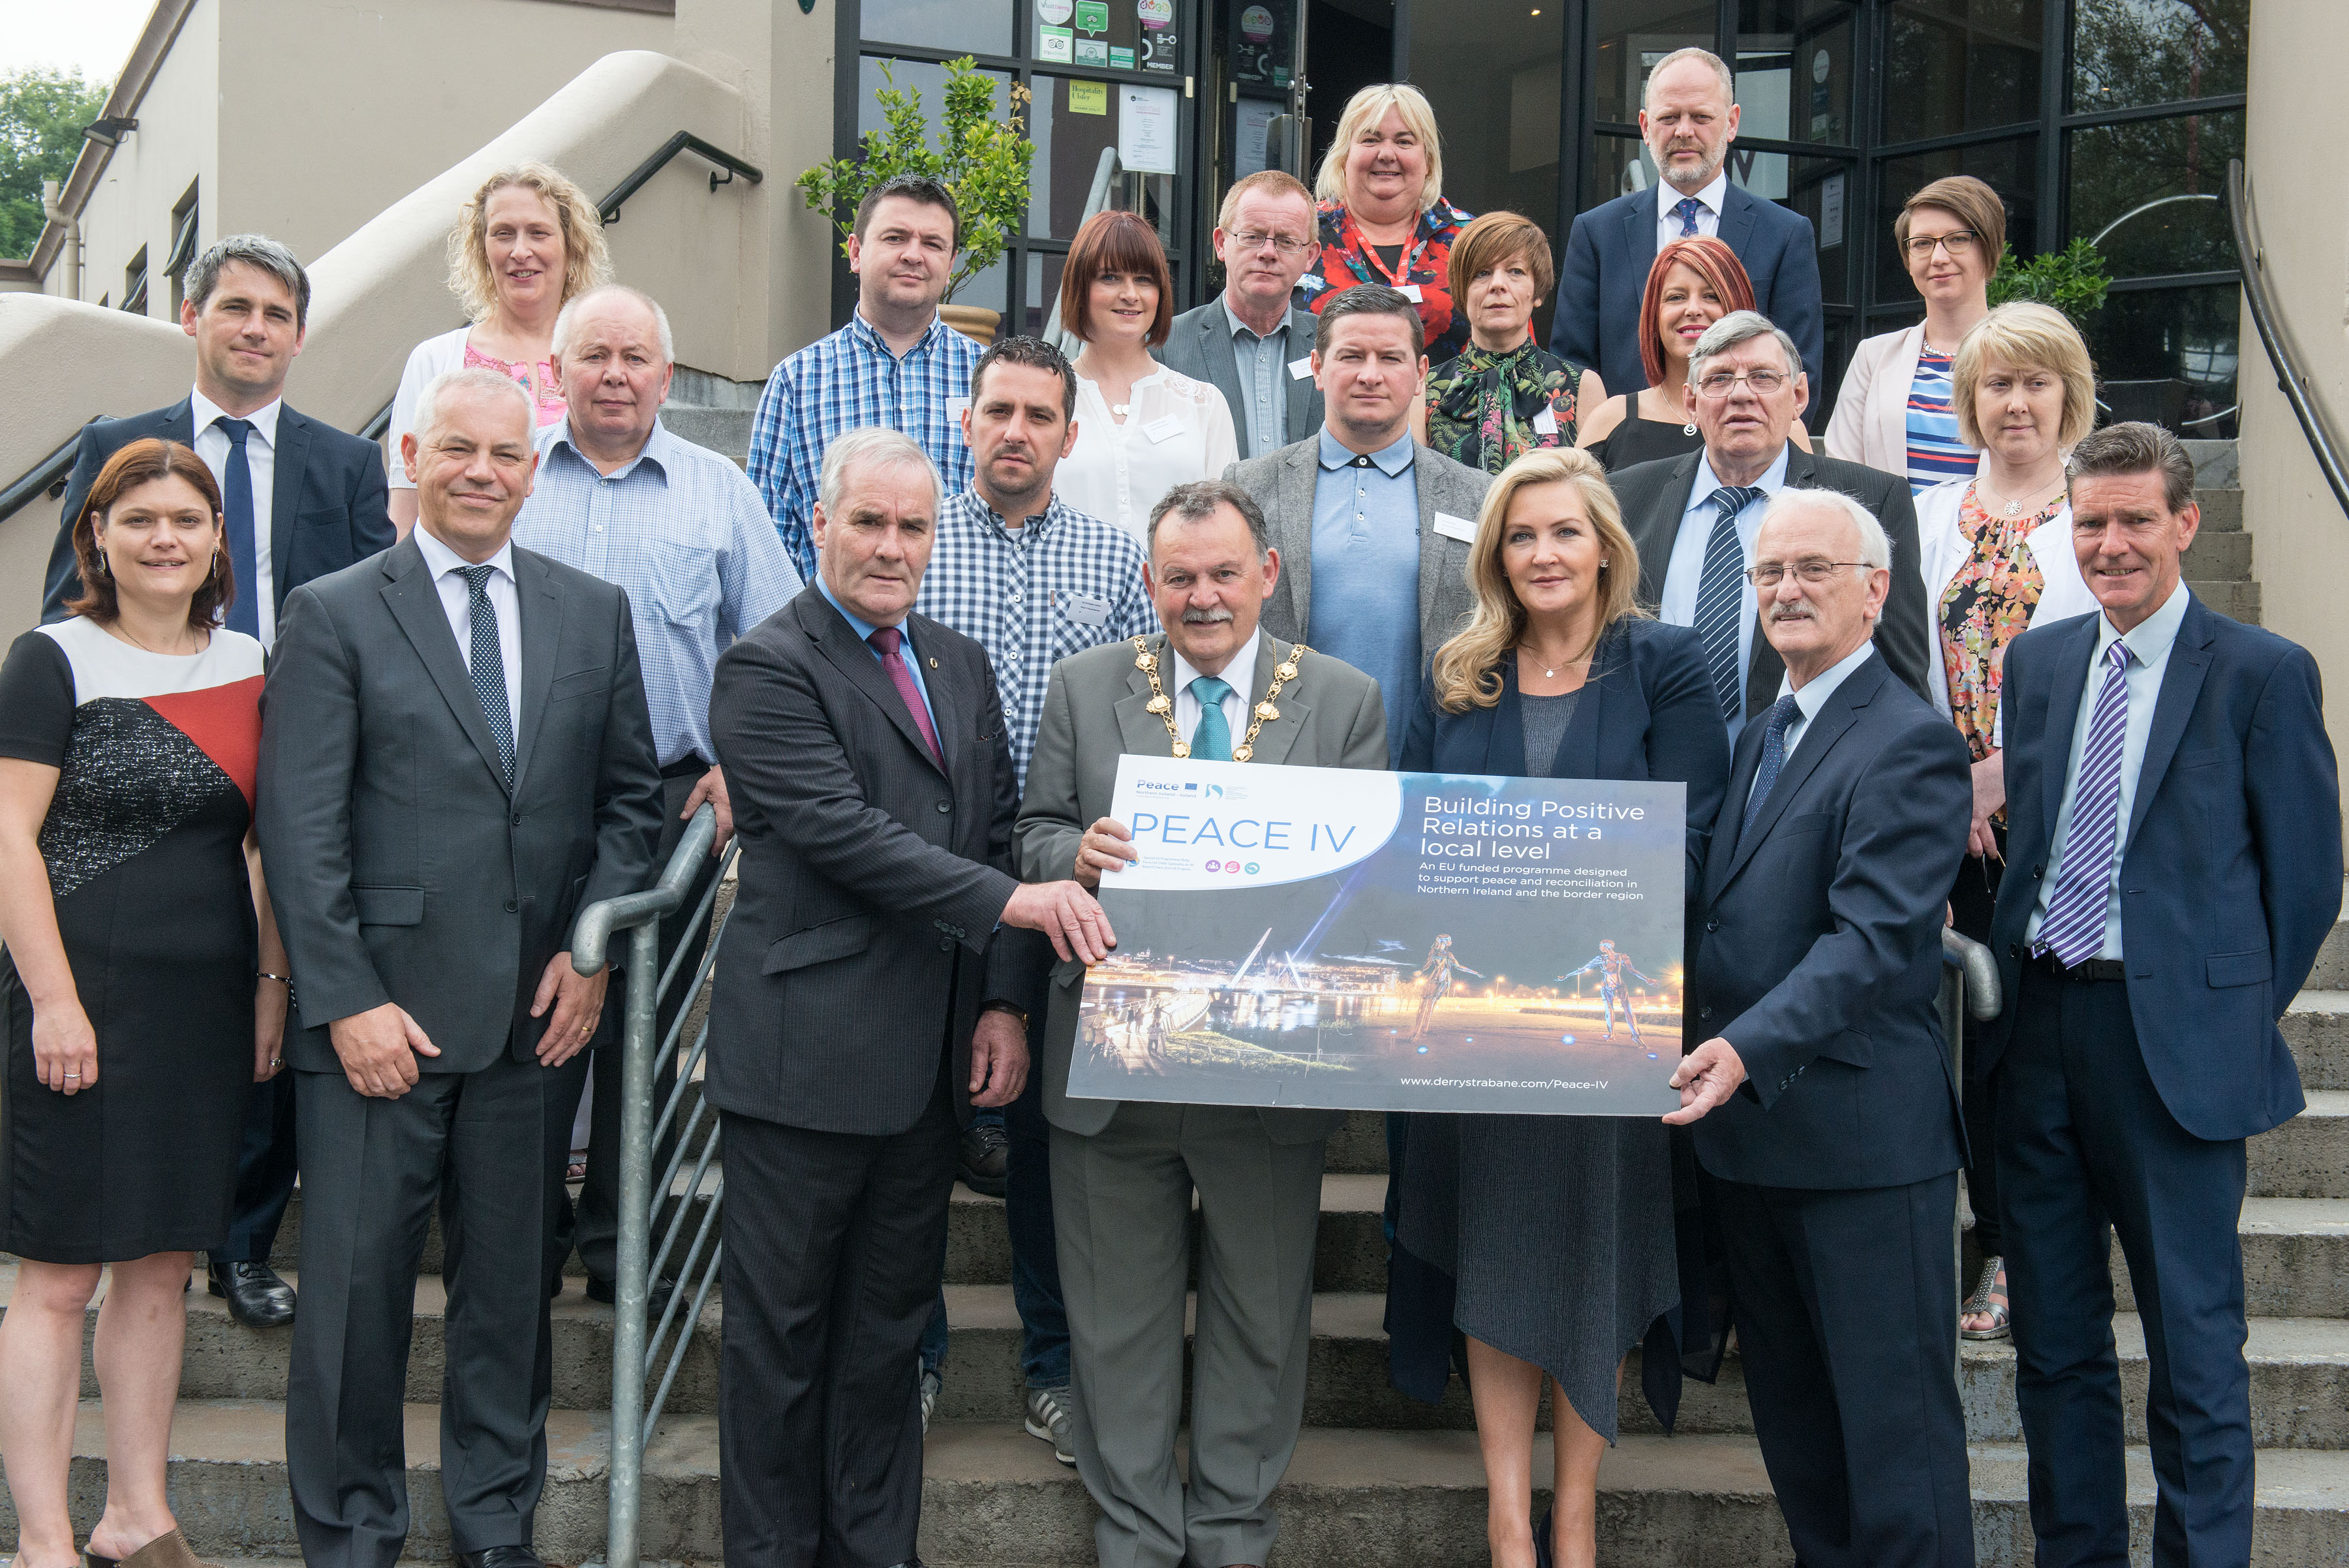 Derry City and Strabane District Council Peace IV Programme Launch